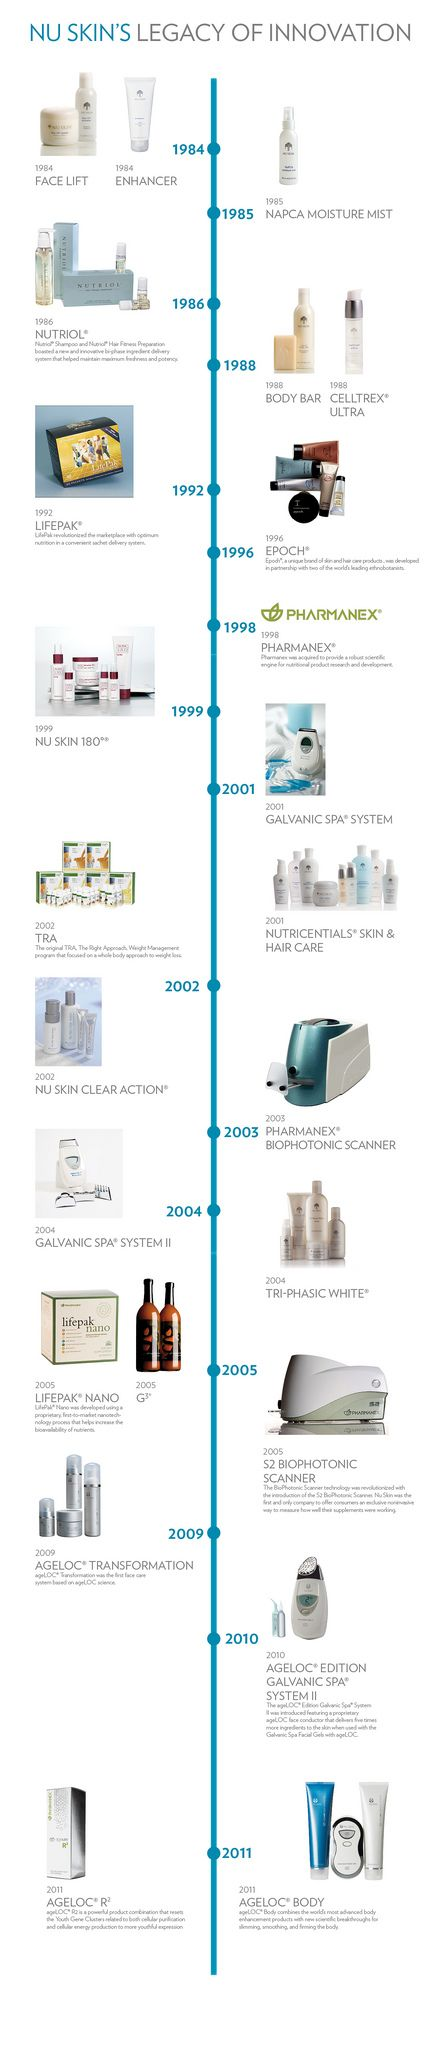 Nu Skin's Legacy of Innovation (www.nuskin.com/thesource)